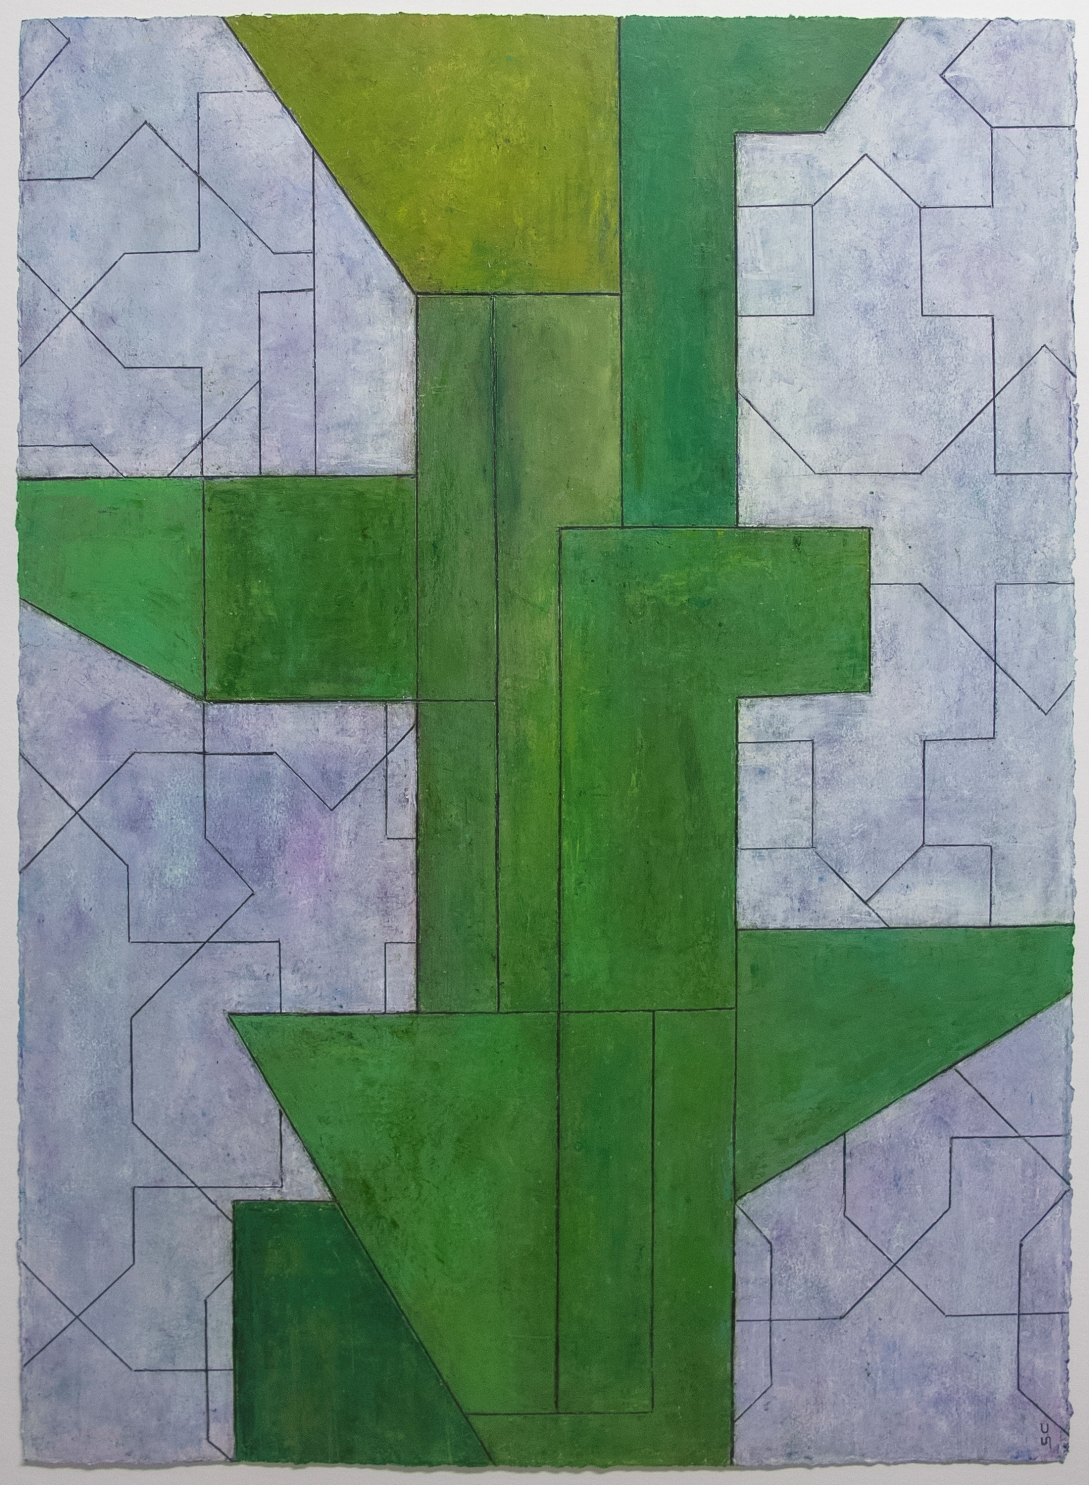 Captivating Geometric Abstract Art by Stephen Cimini